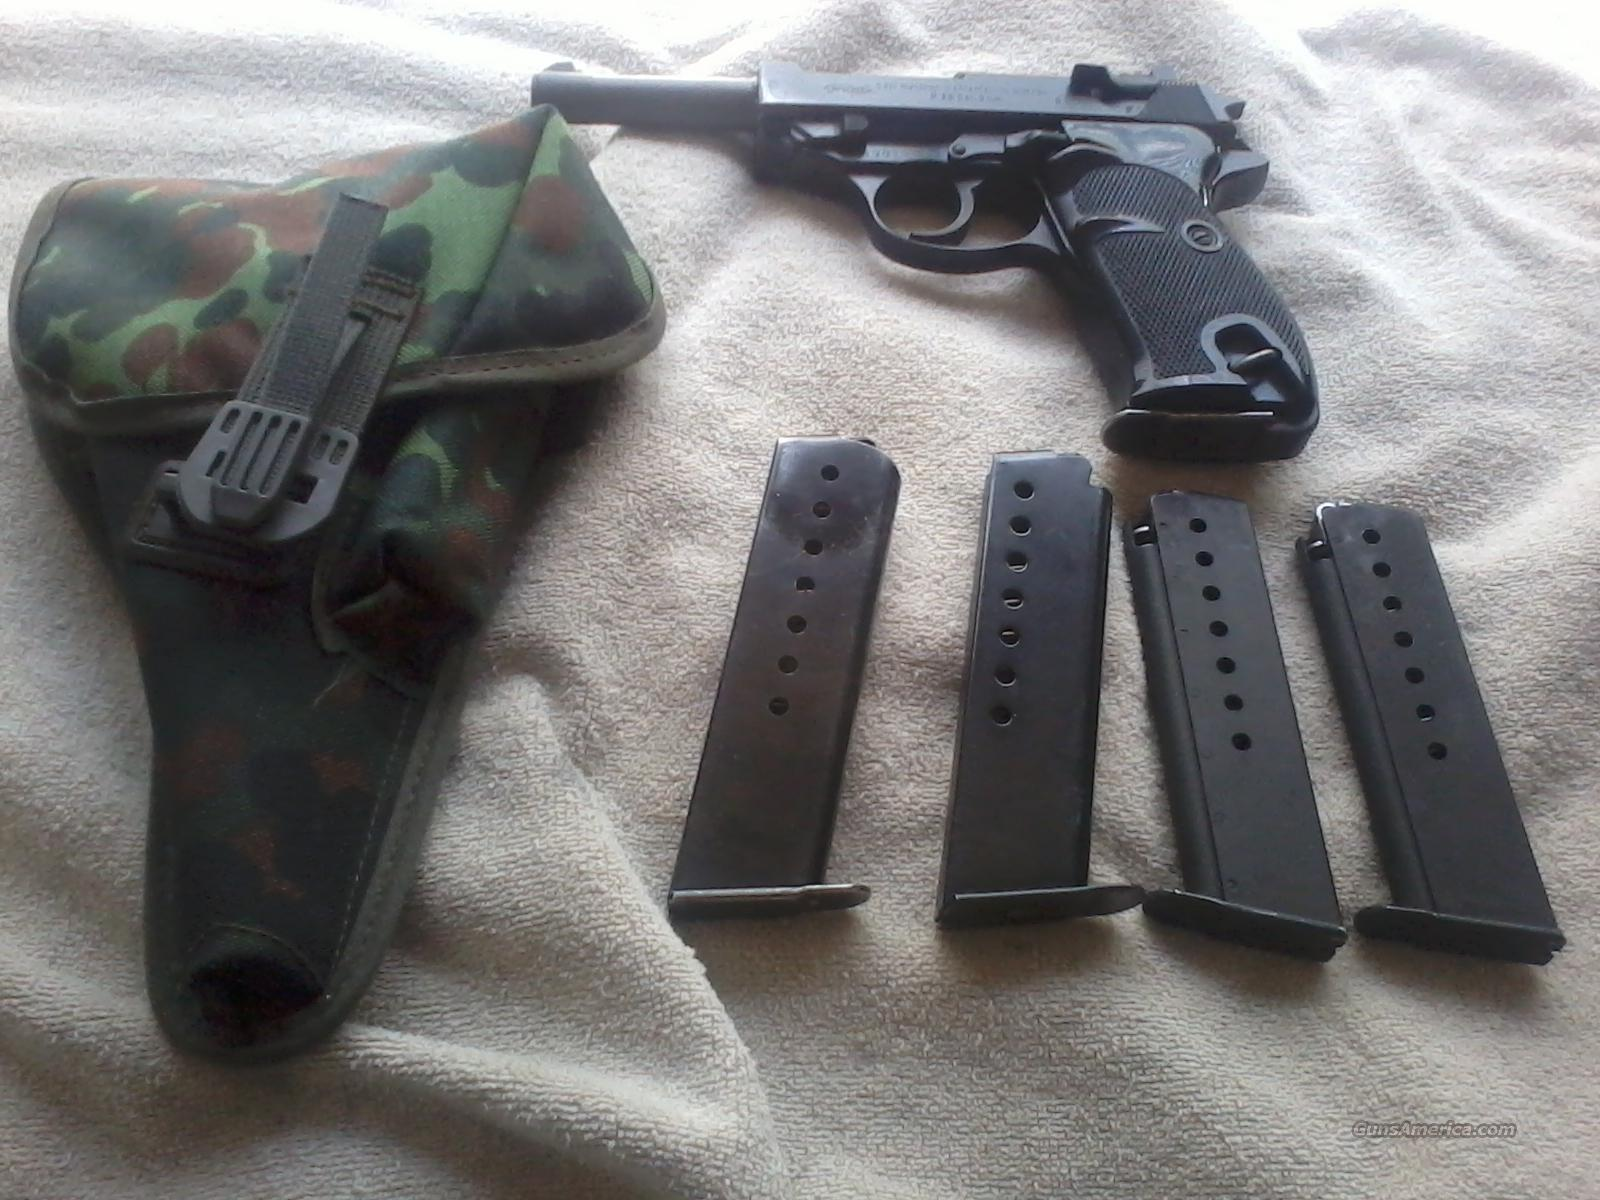 walther p38 post ww2 model near mint condition with extras  Guns > Pistols > Walther Pistols > Post WWII > P38